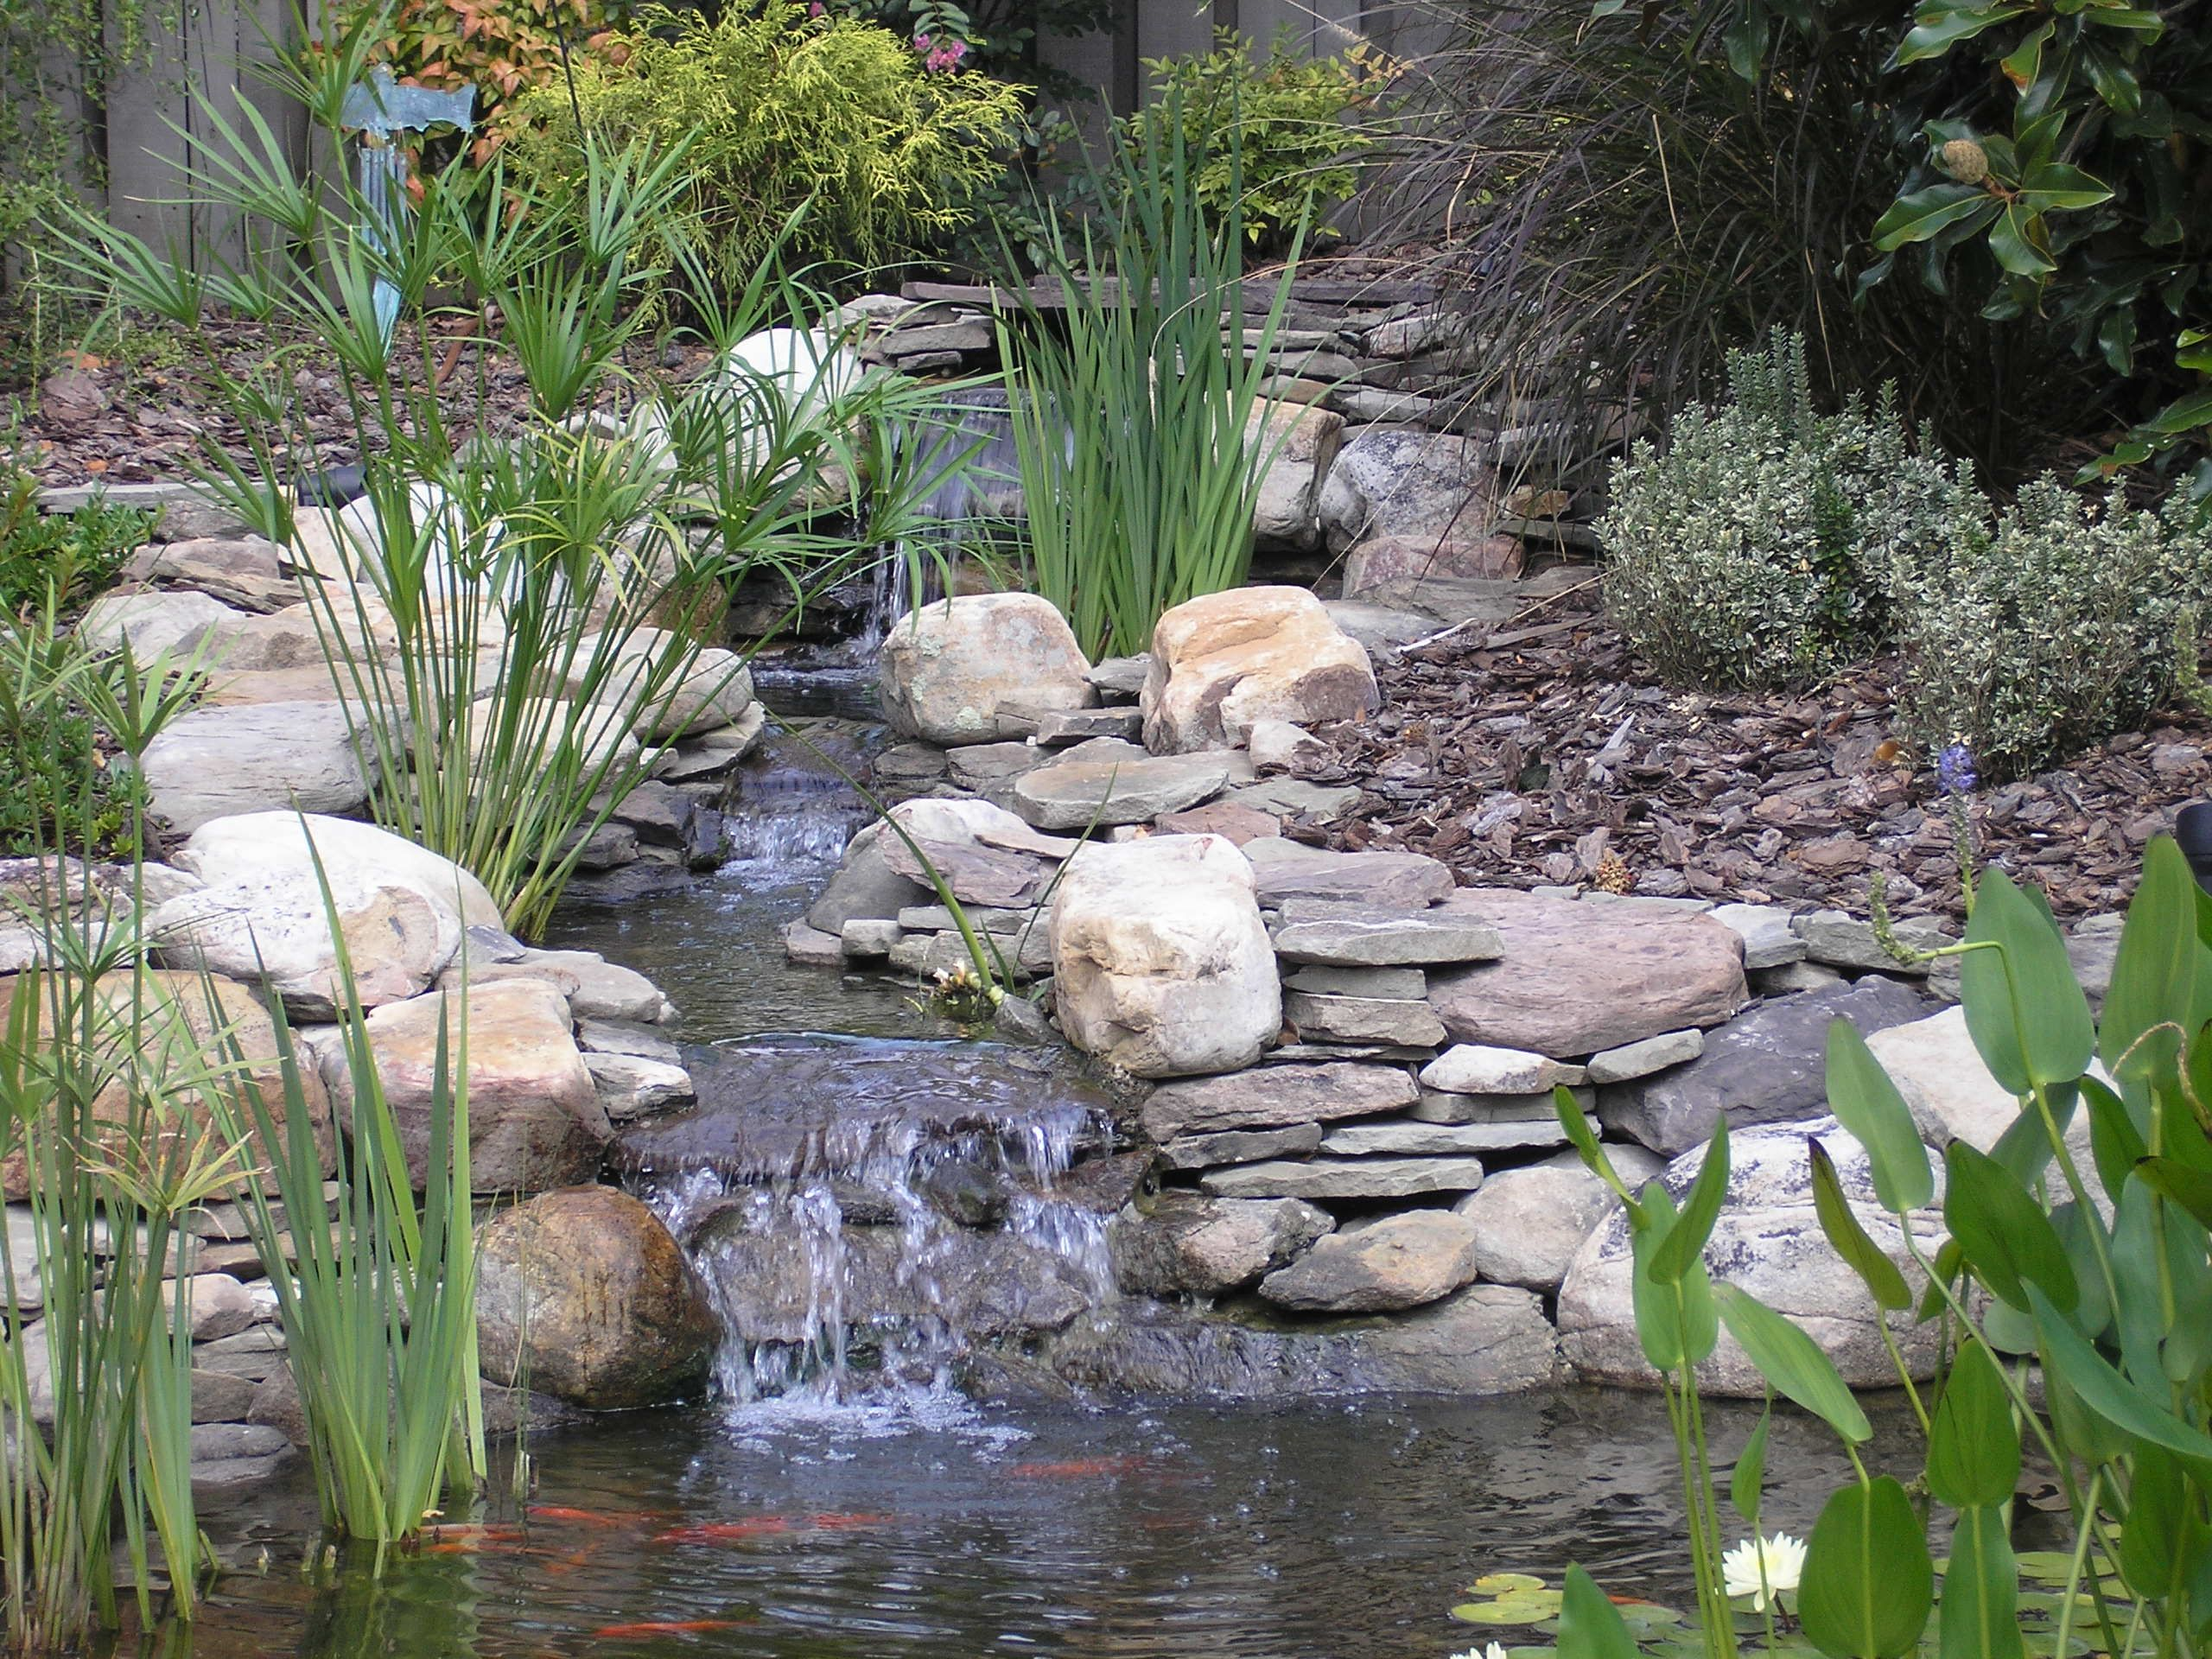 Pin By Pond Armor On Waterfalls Water Features In The Garden Ponds For Small Gardens Ponds Backyard